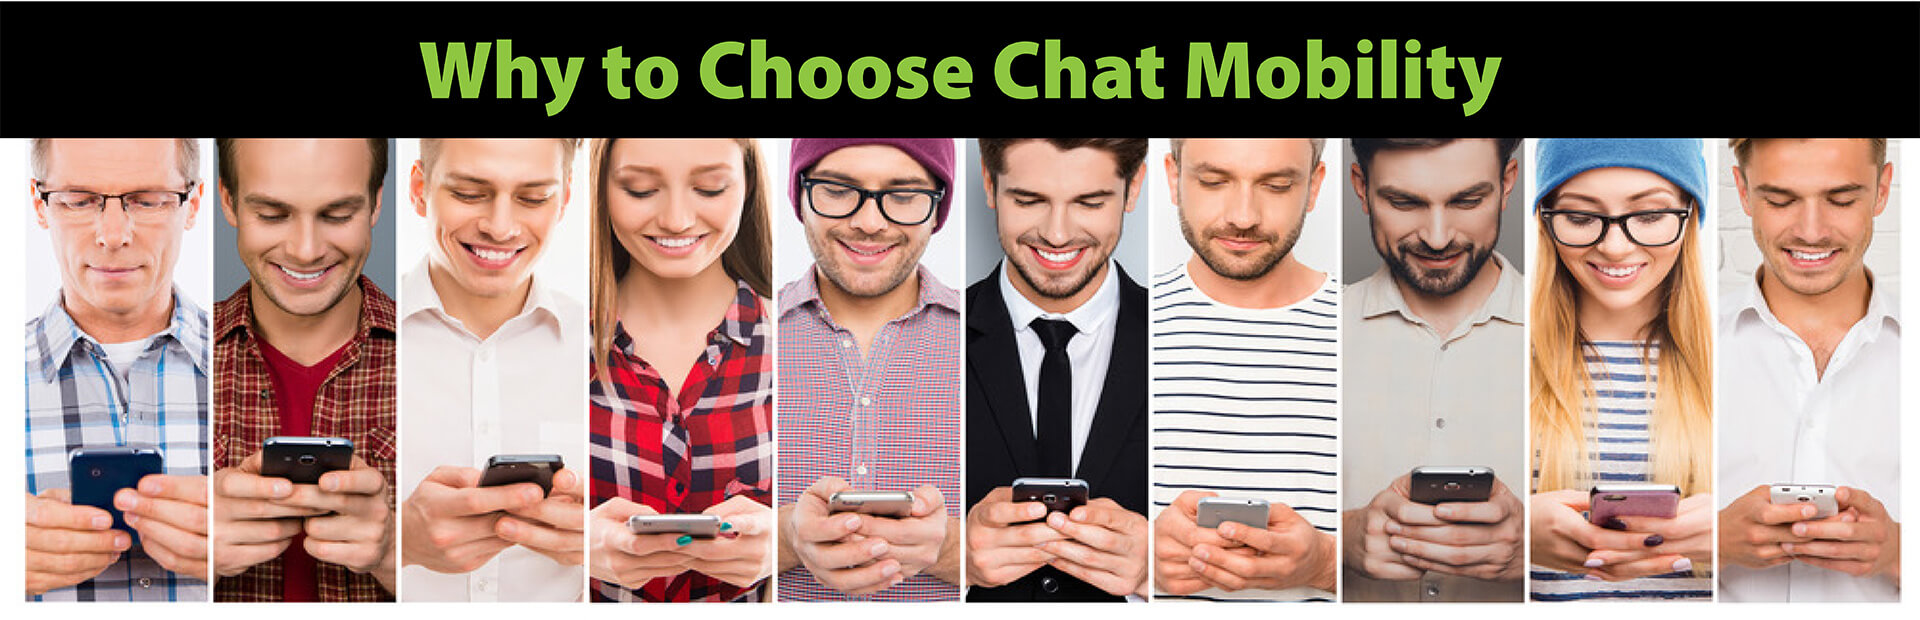 Why to Choose Chat Mobility